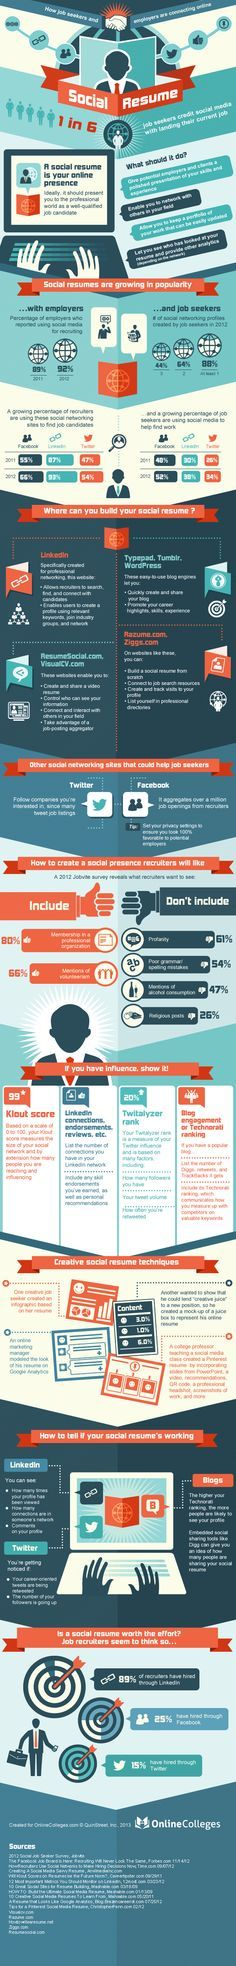 social media #resume tips #job #career Want To Know More, Ask Me Here